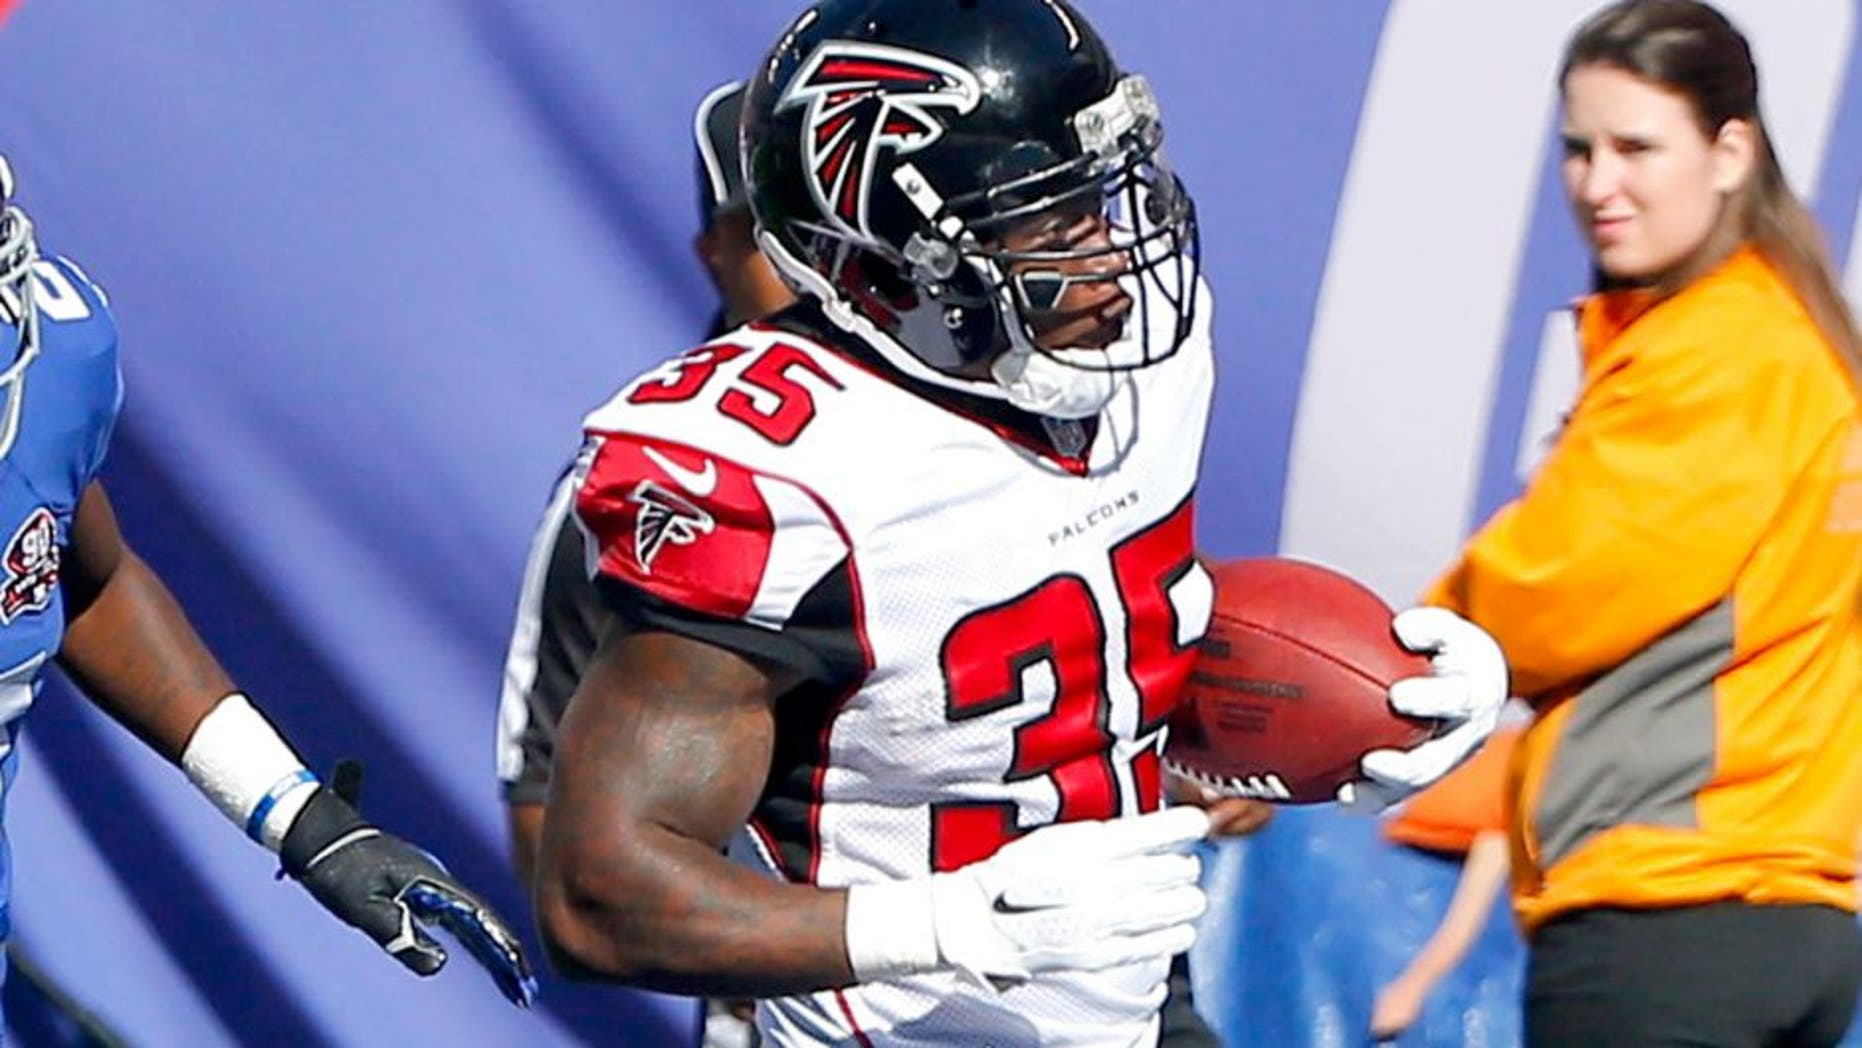 Oct 5, 2014; East Rutherford, NJ, USA; Atlanta Falcons running back Antone Smith (35) scores a touchdown past New York Giants cornerback Dominique Rodgers-Cromartie (21) in the 3rd quarter at MetLife Stadium. New York Giants defeat the Atlanta Falcons 30-20. Mandatory Credit: Jim O'Connor-USA TODAY Sports